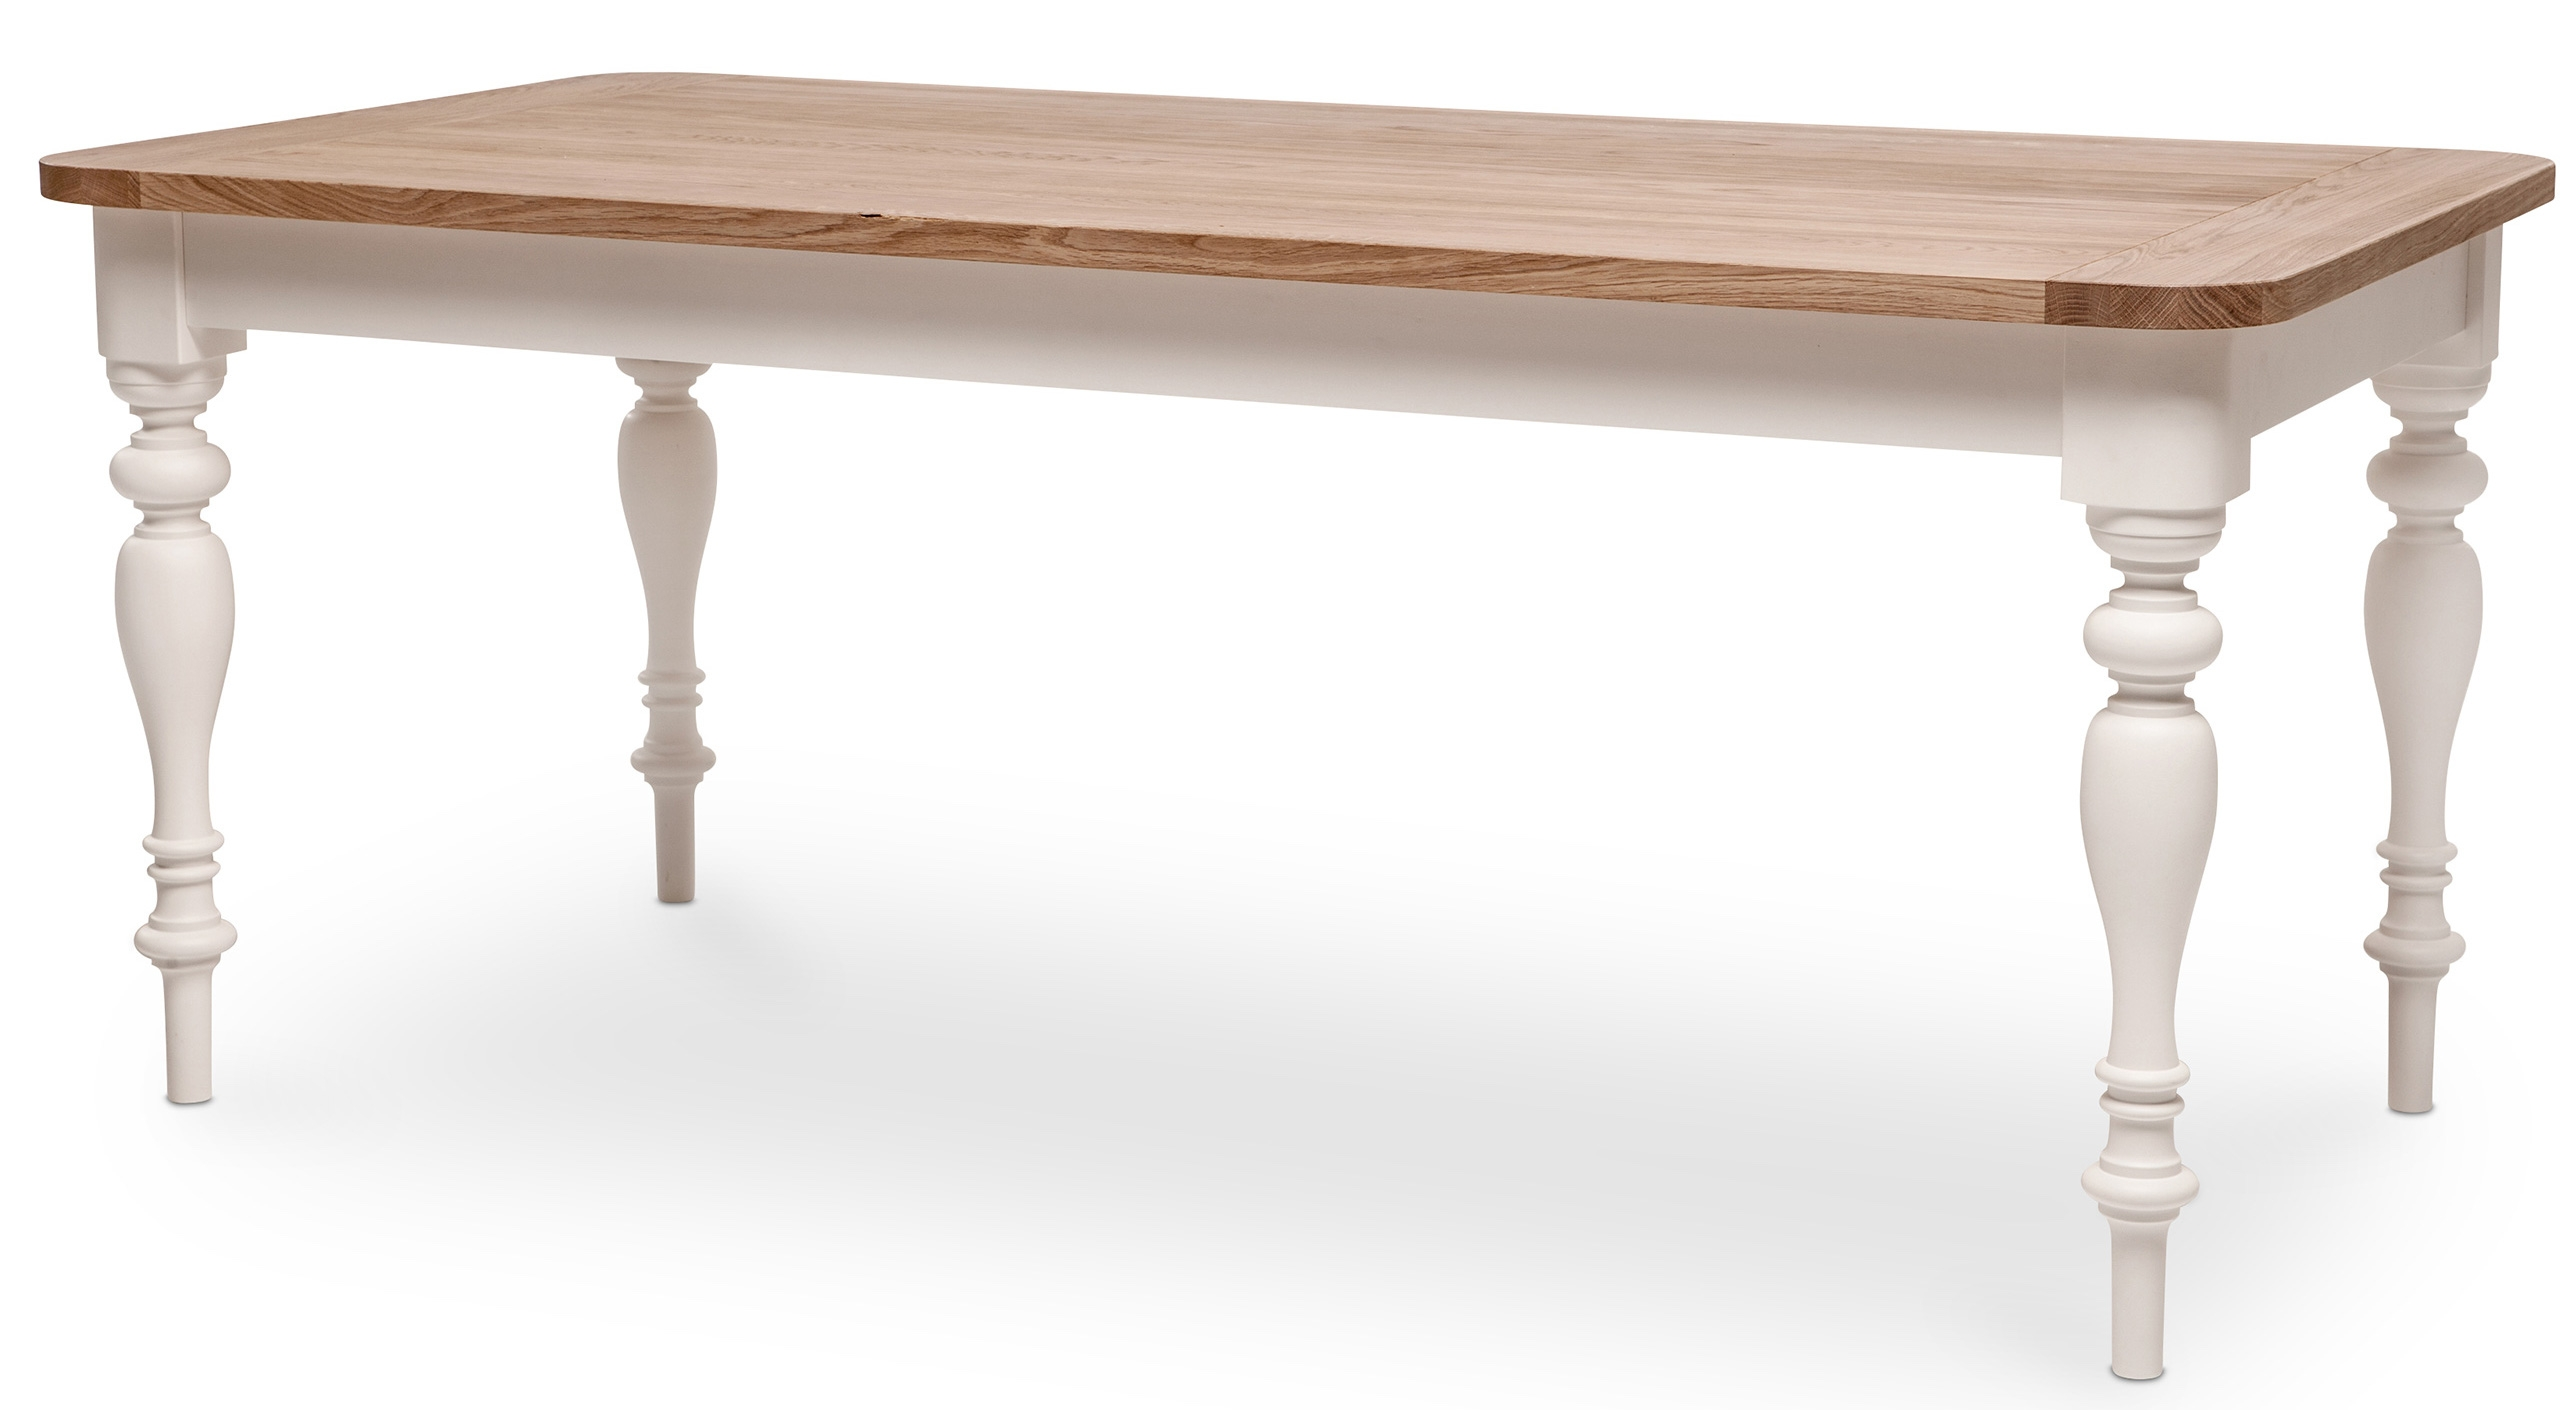 Table bois massif brut manger rustique design de maison for Table a manger massif